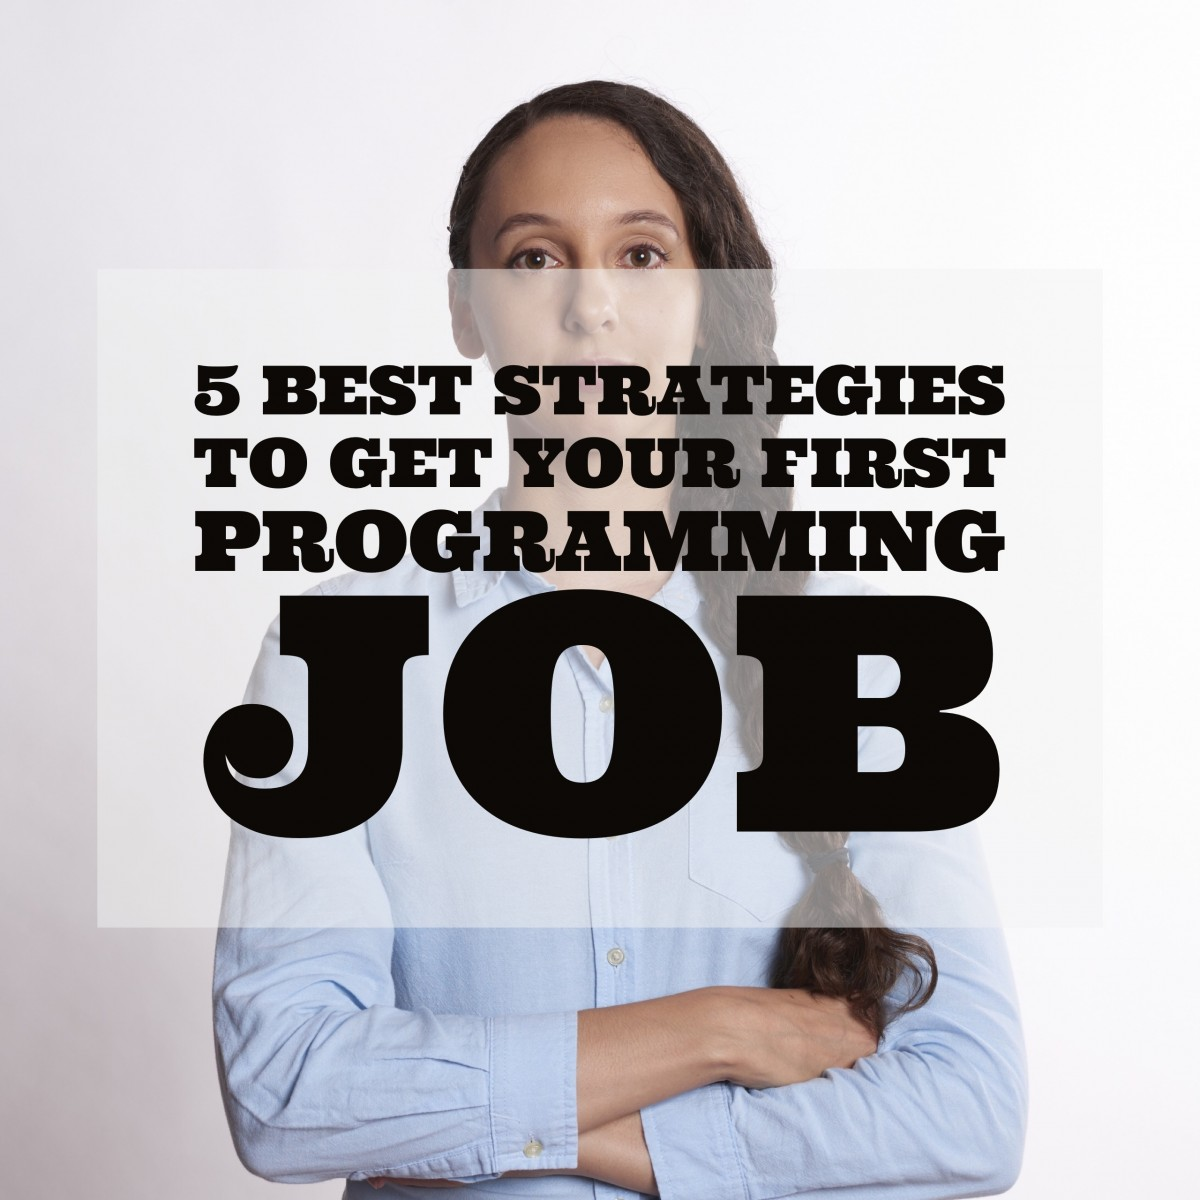 IMG 6128 5 Best Strategies To Get Your First Programming Job people job  market interview hiring finding 8f8821f017